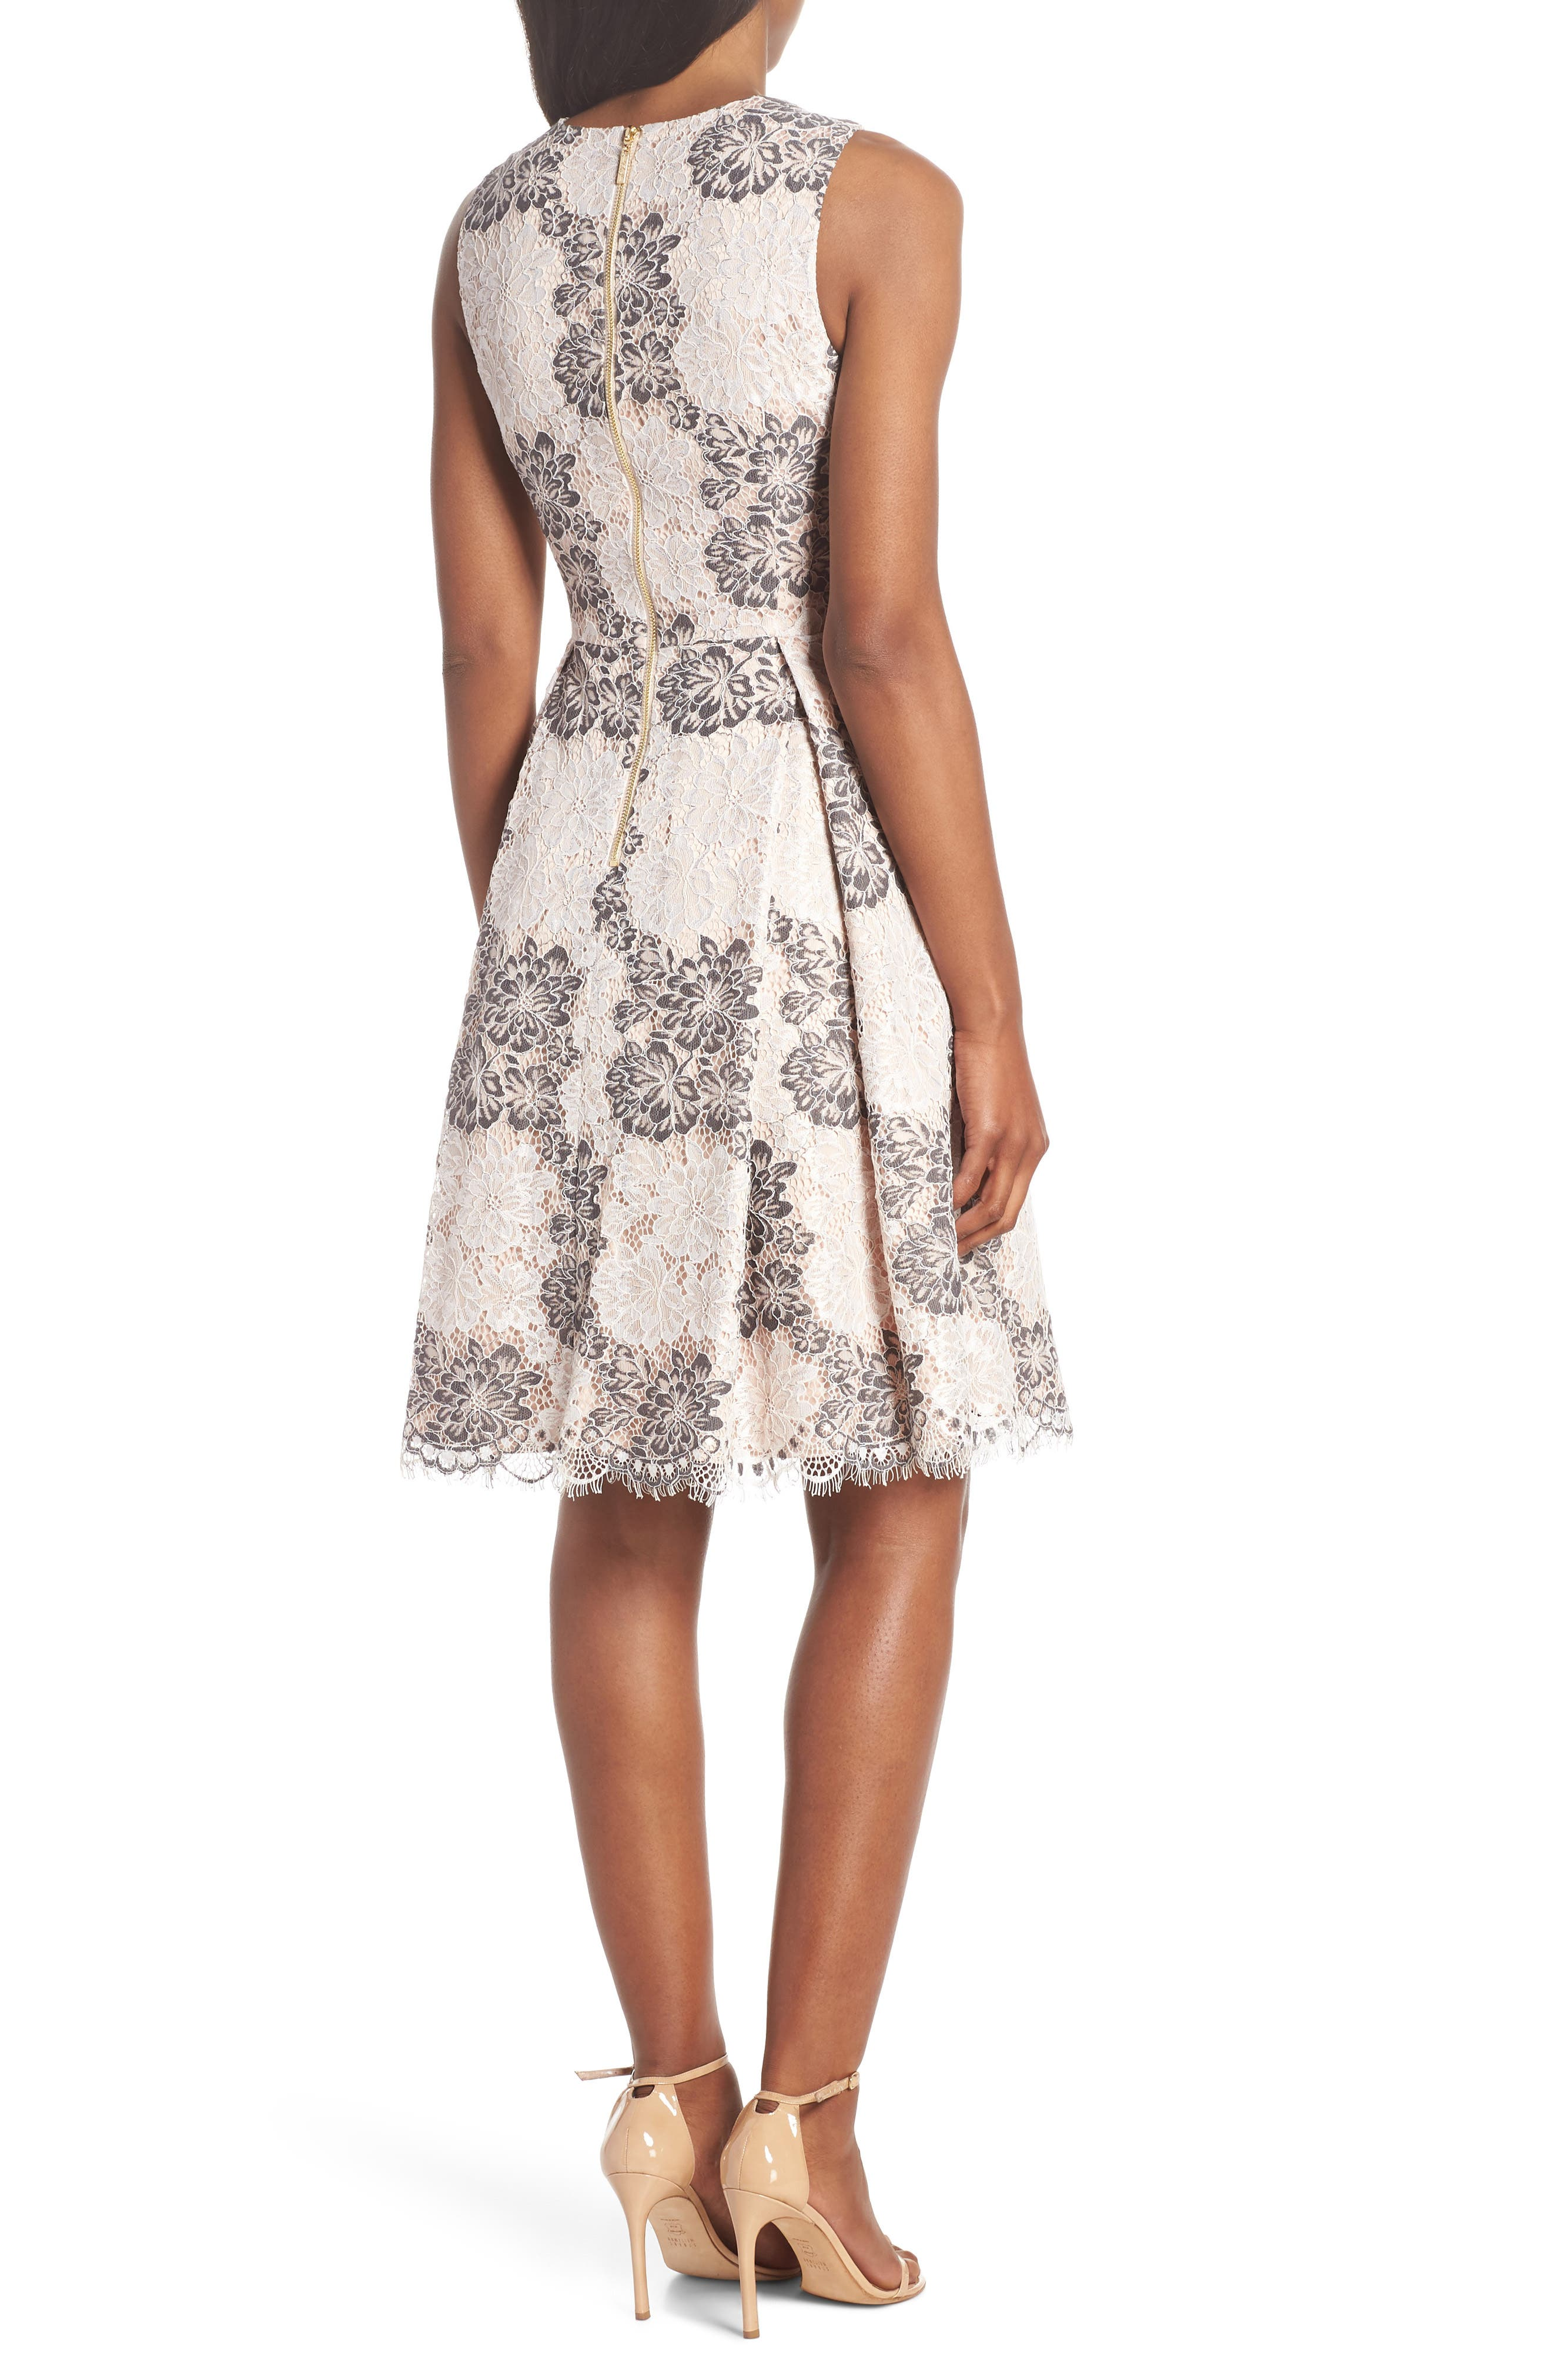 ELIZA J,                             Sleeveless Lace Fit & Flare Dress,                             Alternate thumbnail 2, color,                             TAUPE MULT